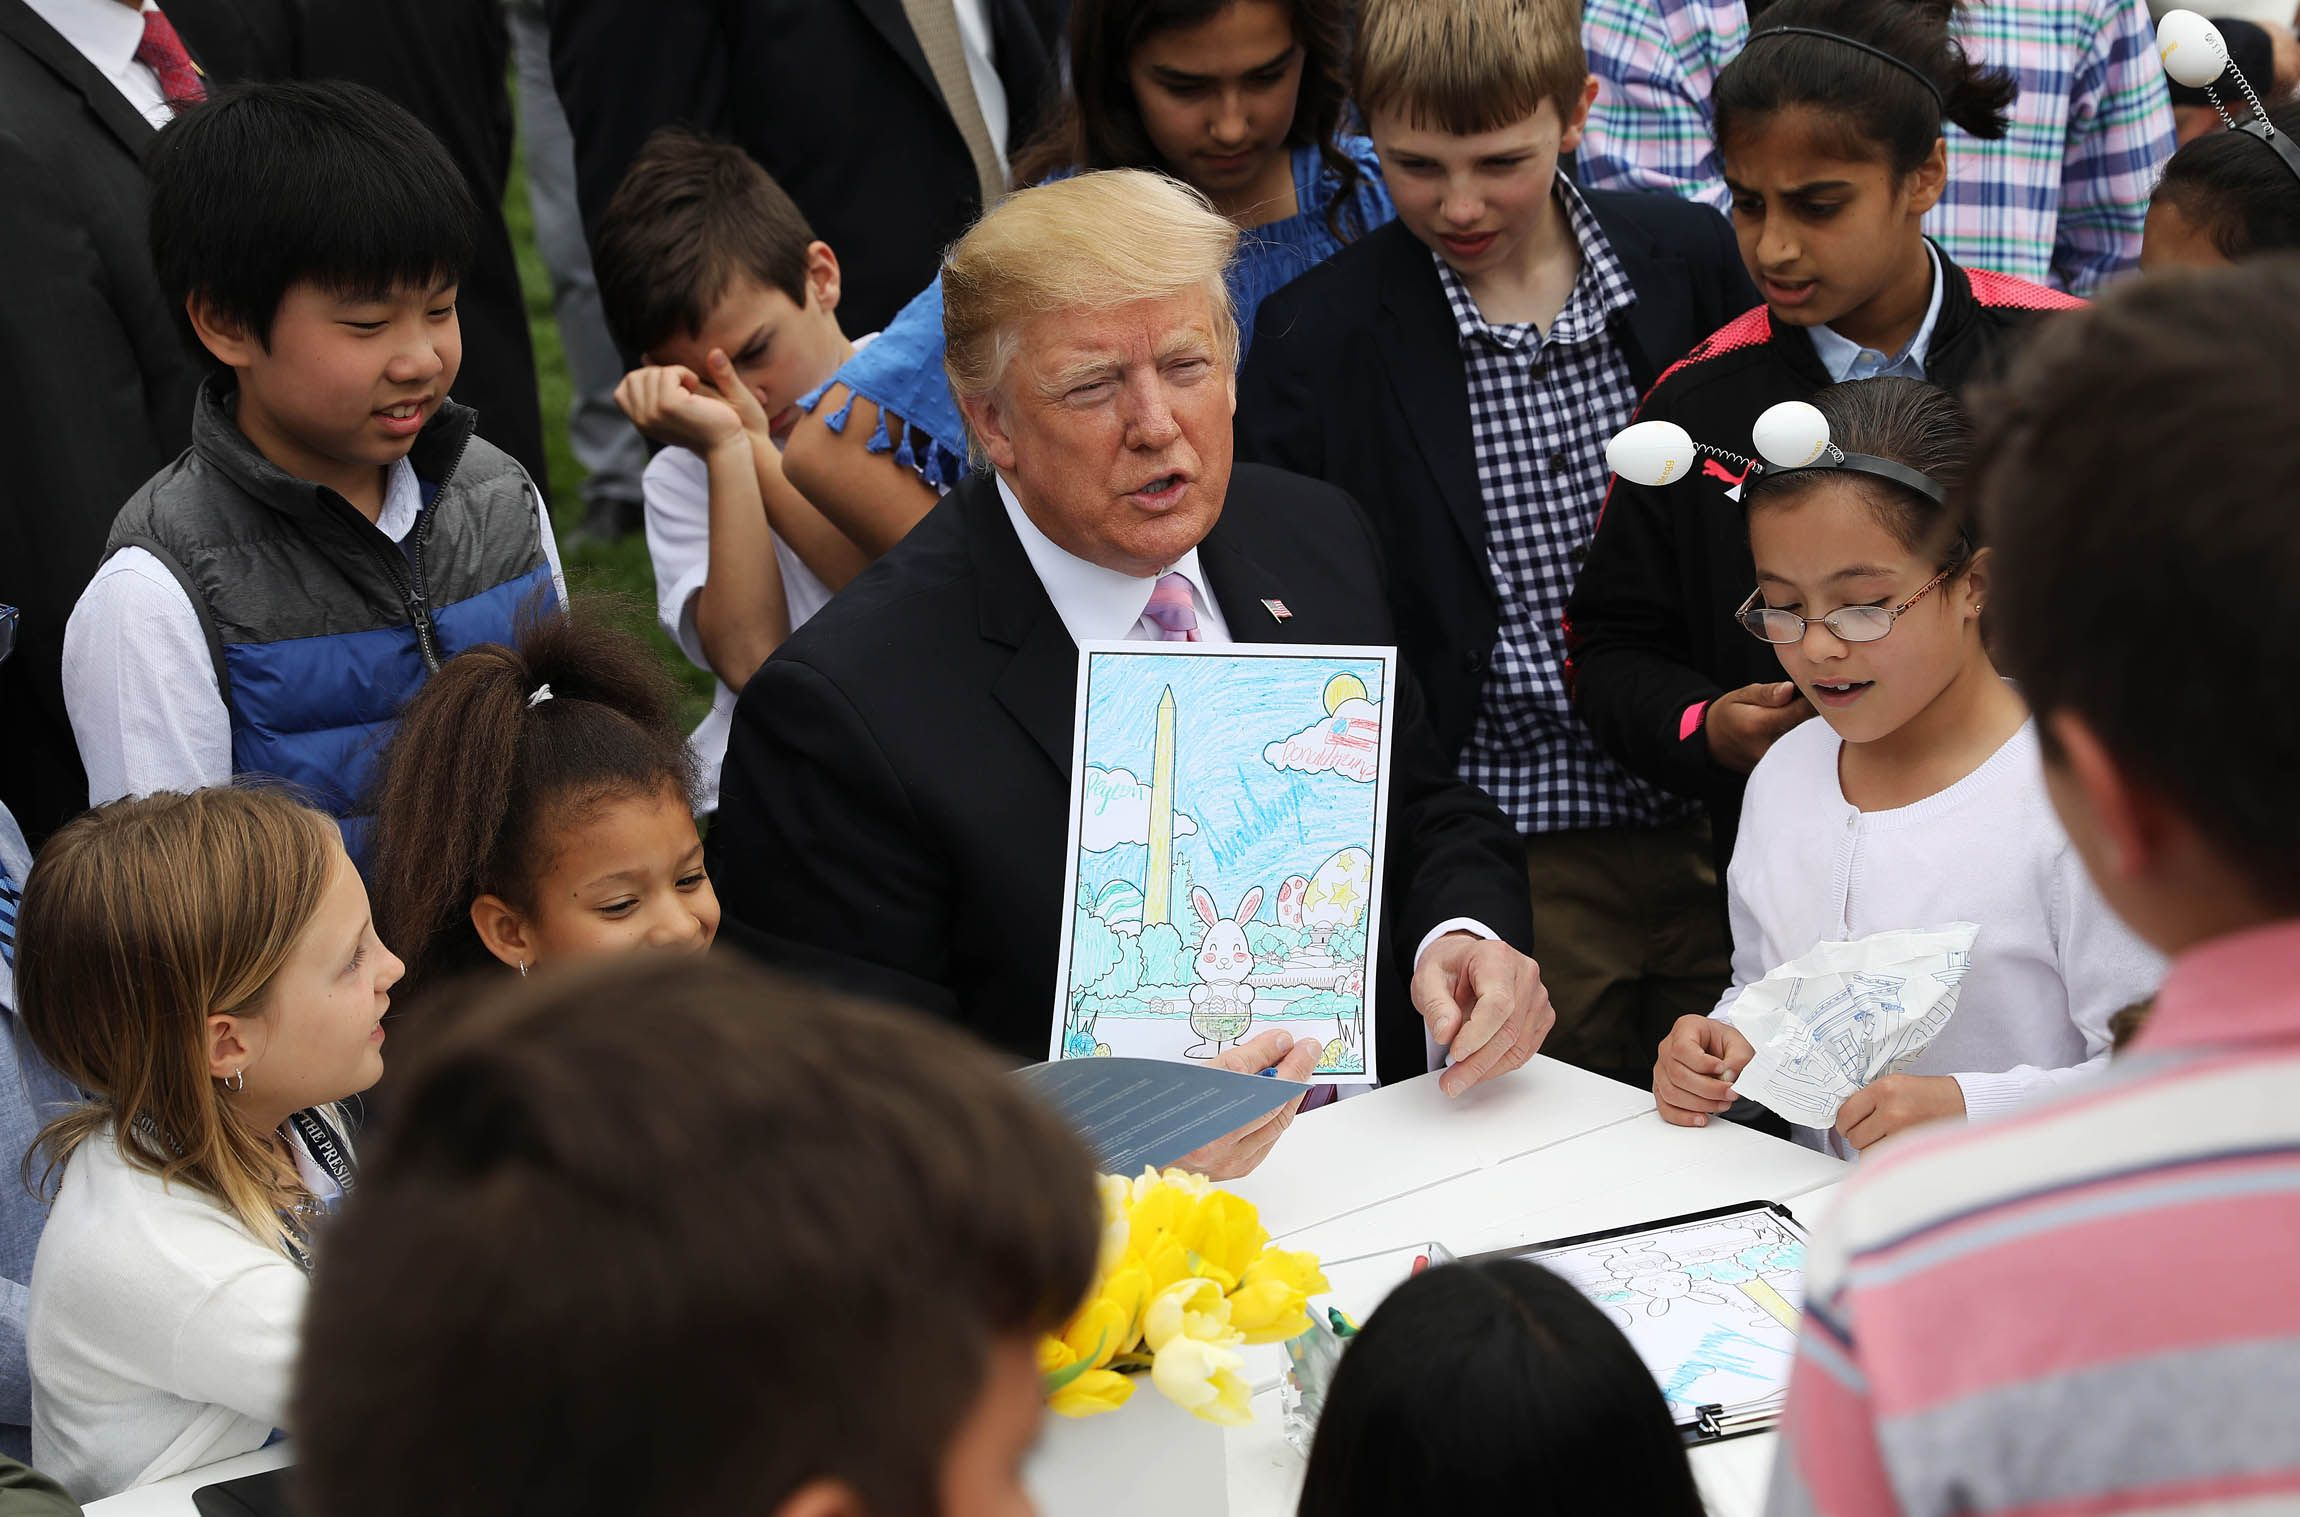 The Annual Easter Egg Roll Is Very Weird at the Trump White House